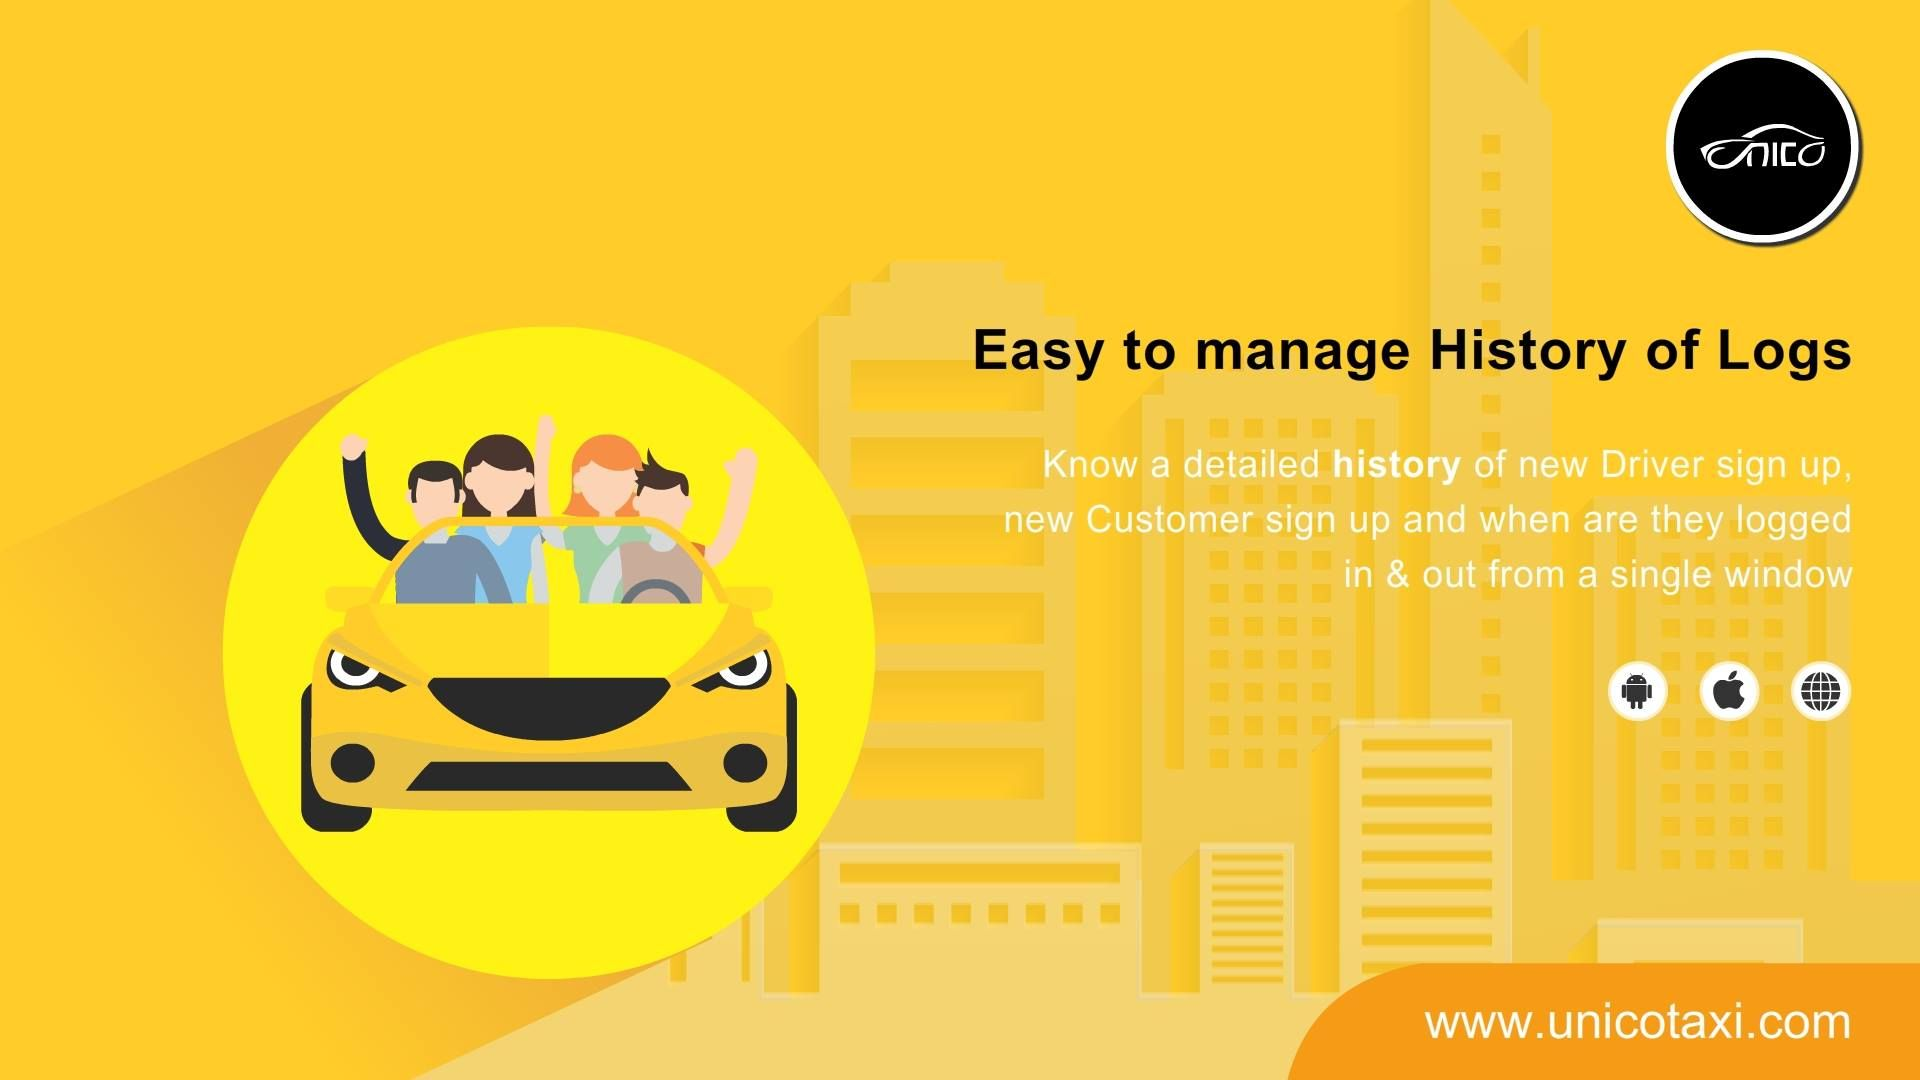 History Logs Know A Detailed History Of New Driver Sign Up